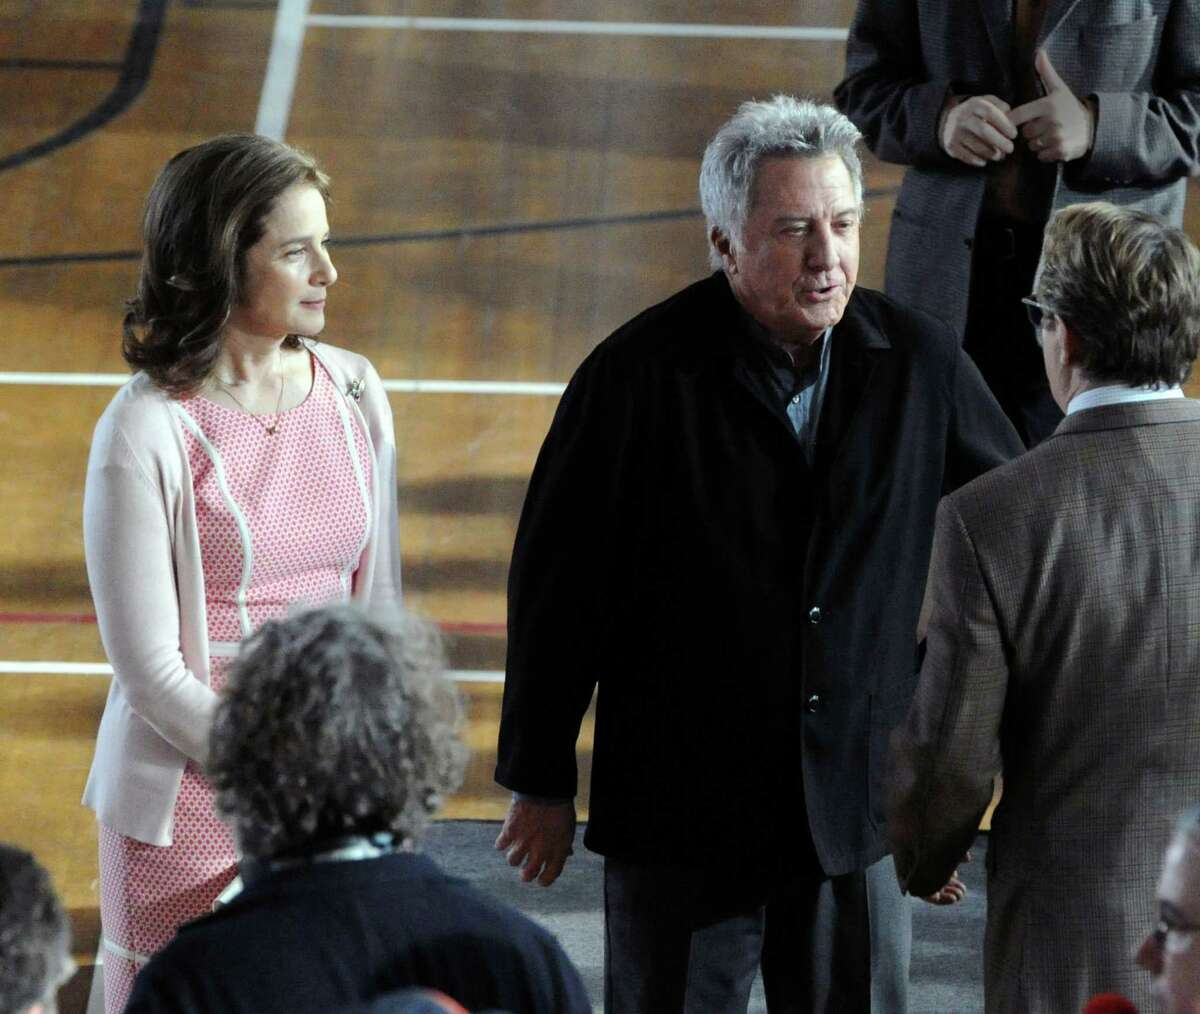 """Actor Dustin Hoffman, right, on the set of """"Boychoir,"""" that was filming at the Greenwich Civic Center in Old Greenwich, Conn.,Tuesday afternoon, March 11, 2014."""